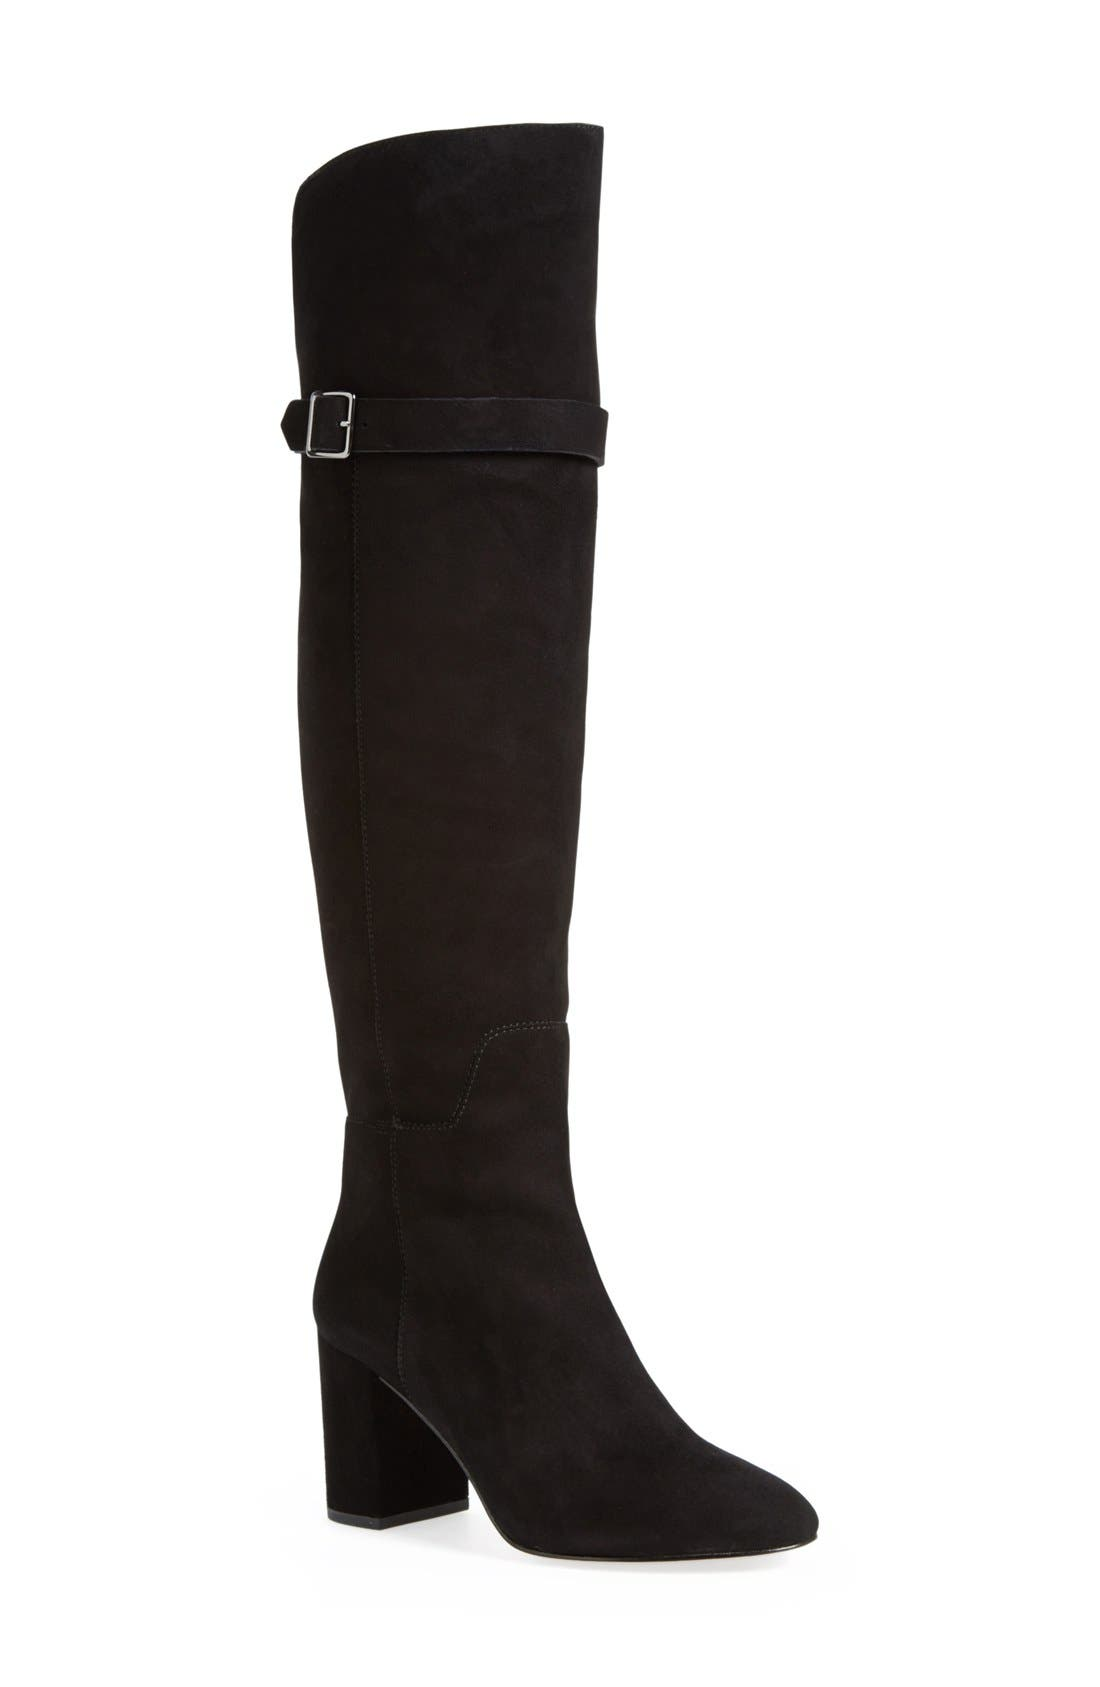 Alternate Image 1 Selected - Pour la Victoire 'Dania' Over the Knee Boot (Women)